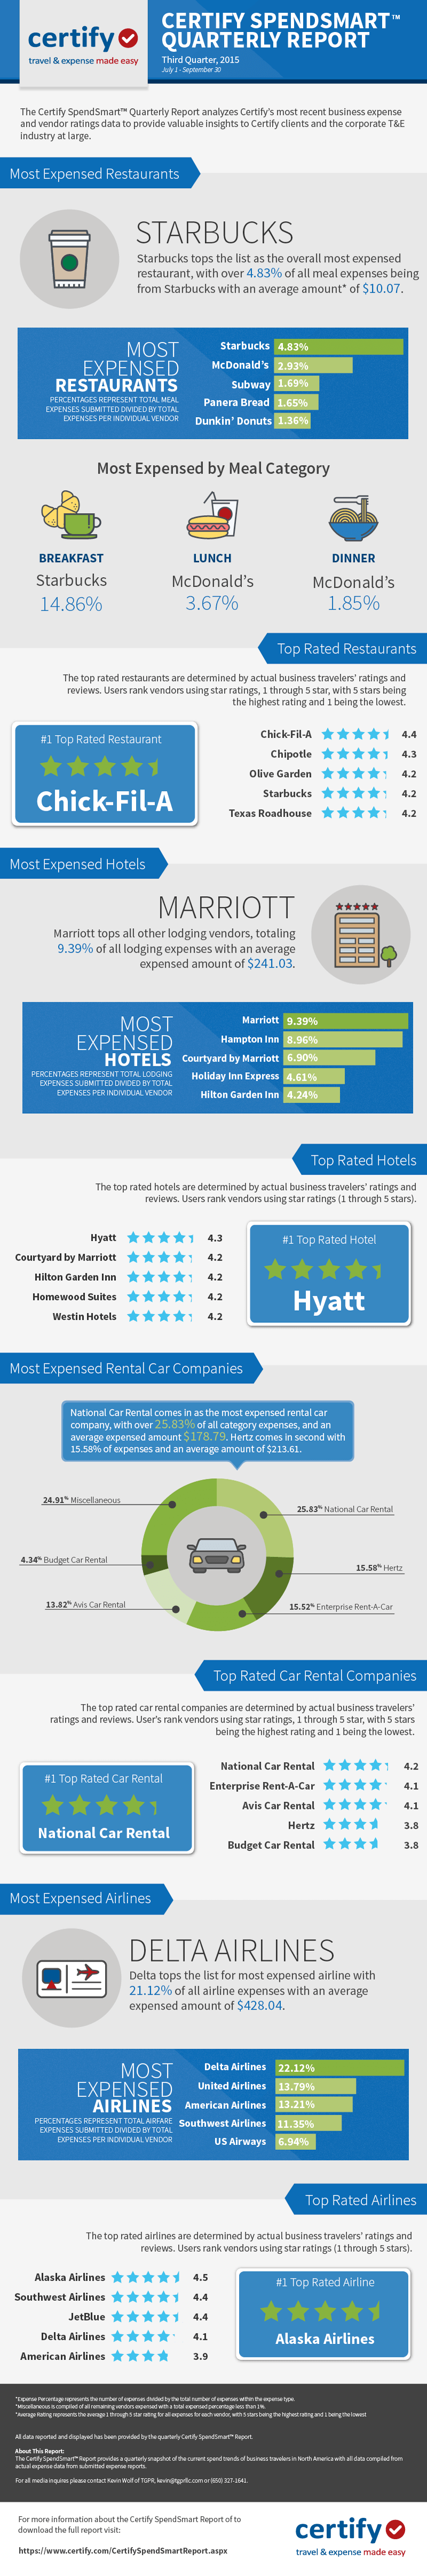 Infographic - Certify SpendSmart™ Report Q3 2015